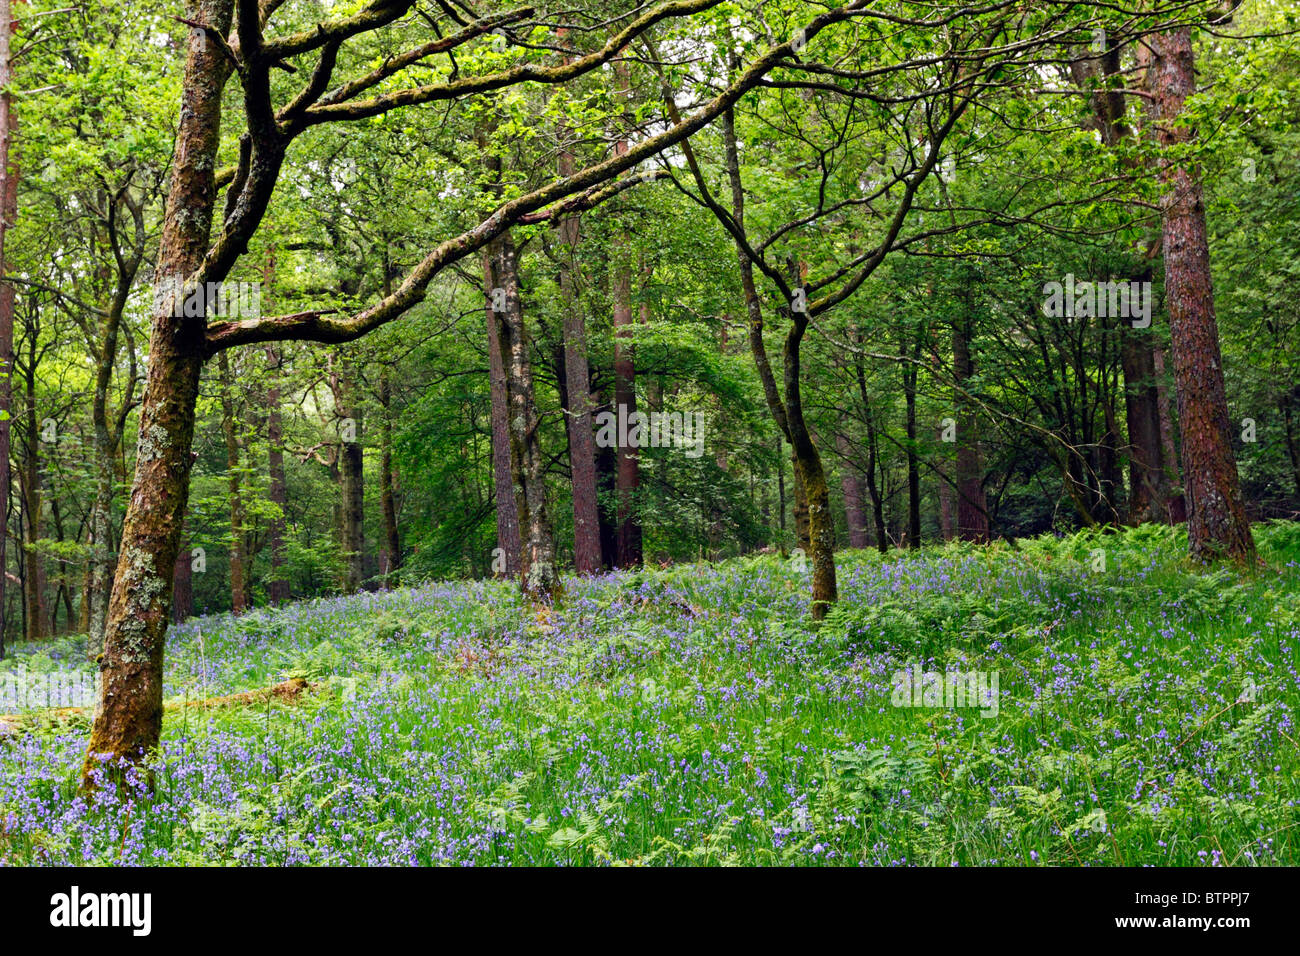 Bluebell Wood near Loweswater in the Lake District National Park, Cumbria, England. Stock Photo